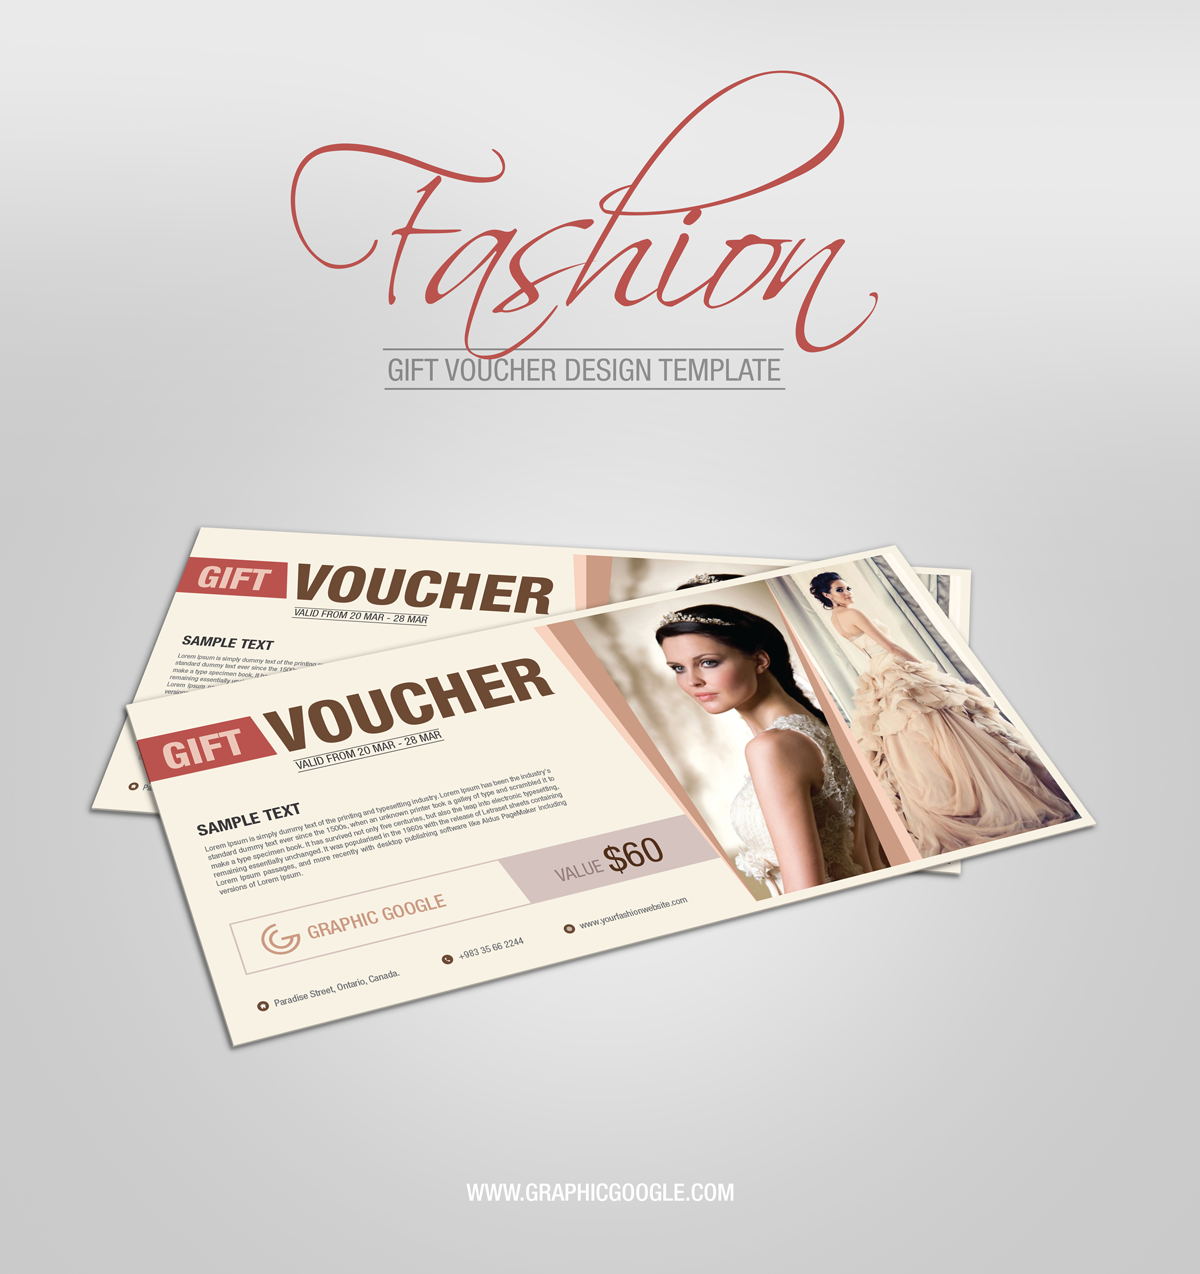 Free-Fashion-Gift-Voucher-Design-Template